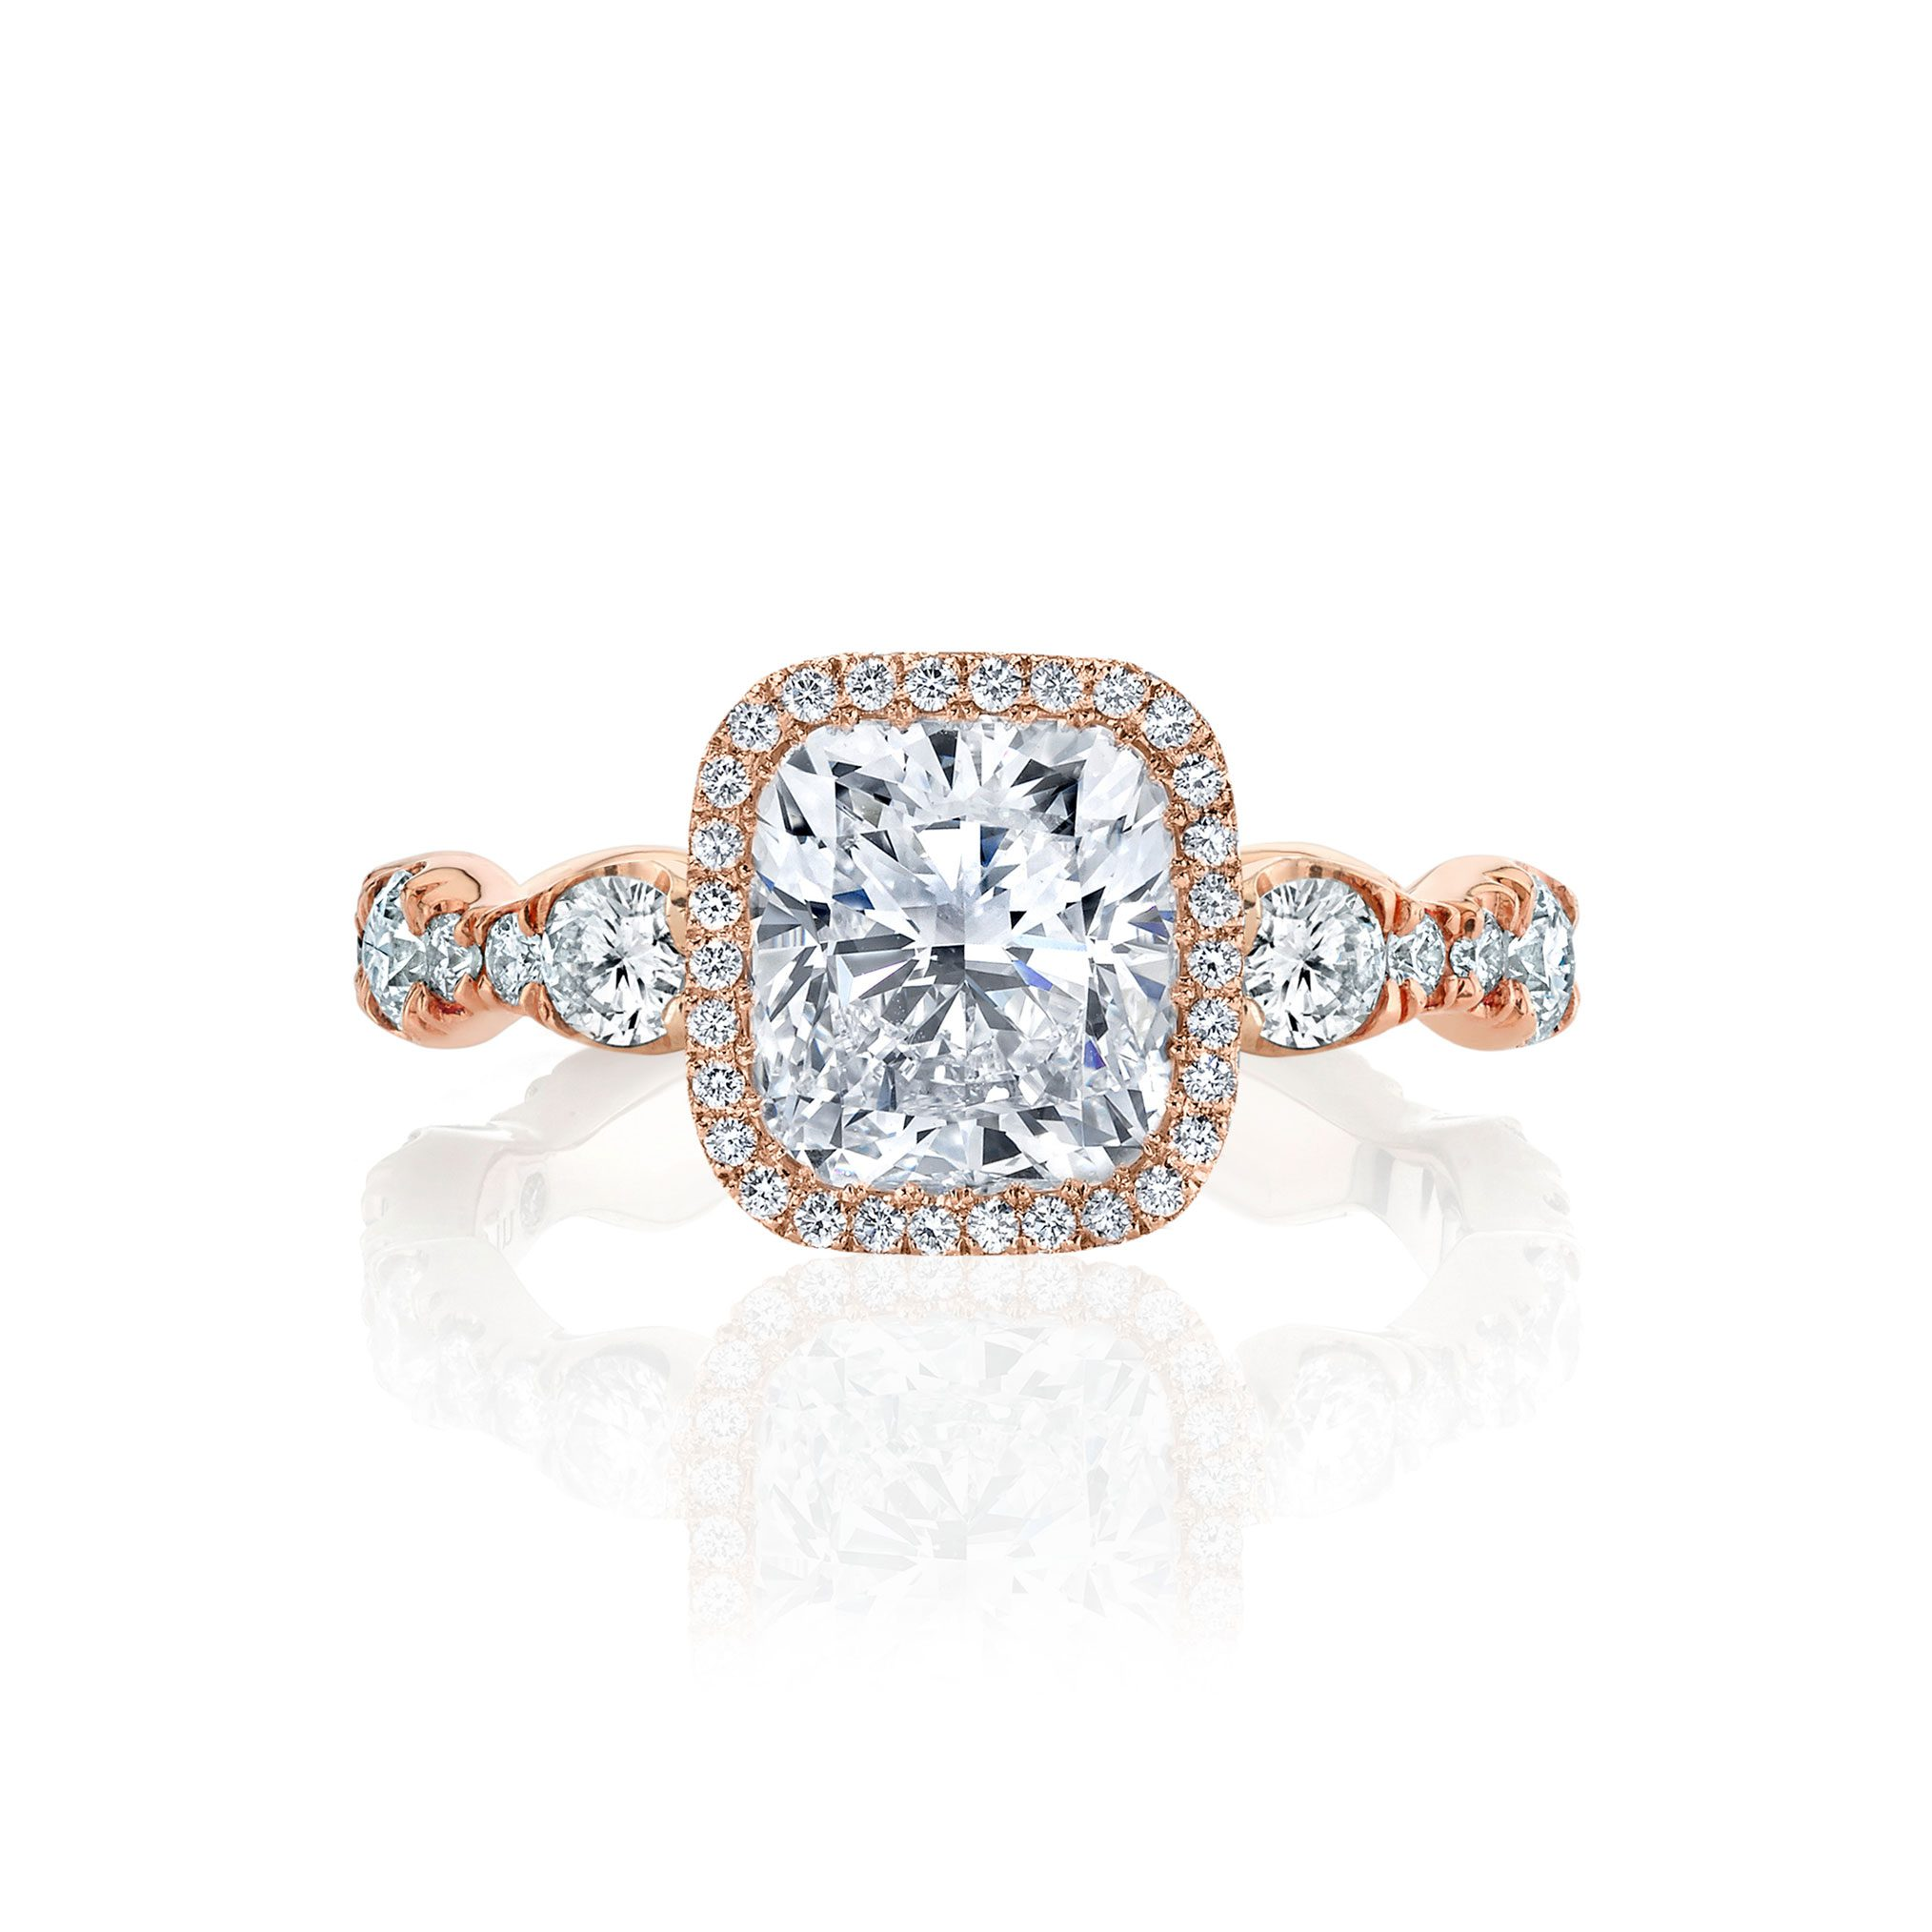 Yvonne Seamless Halo® Engagement Ring with Lab Grown Cushion Cut Diamond in 18k rose gold